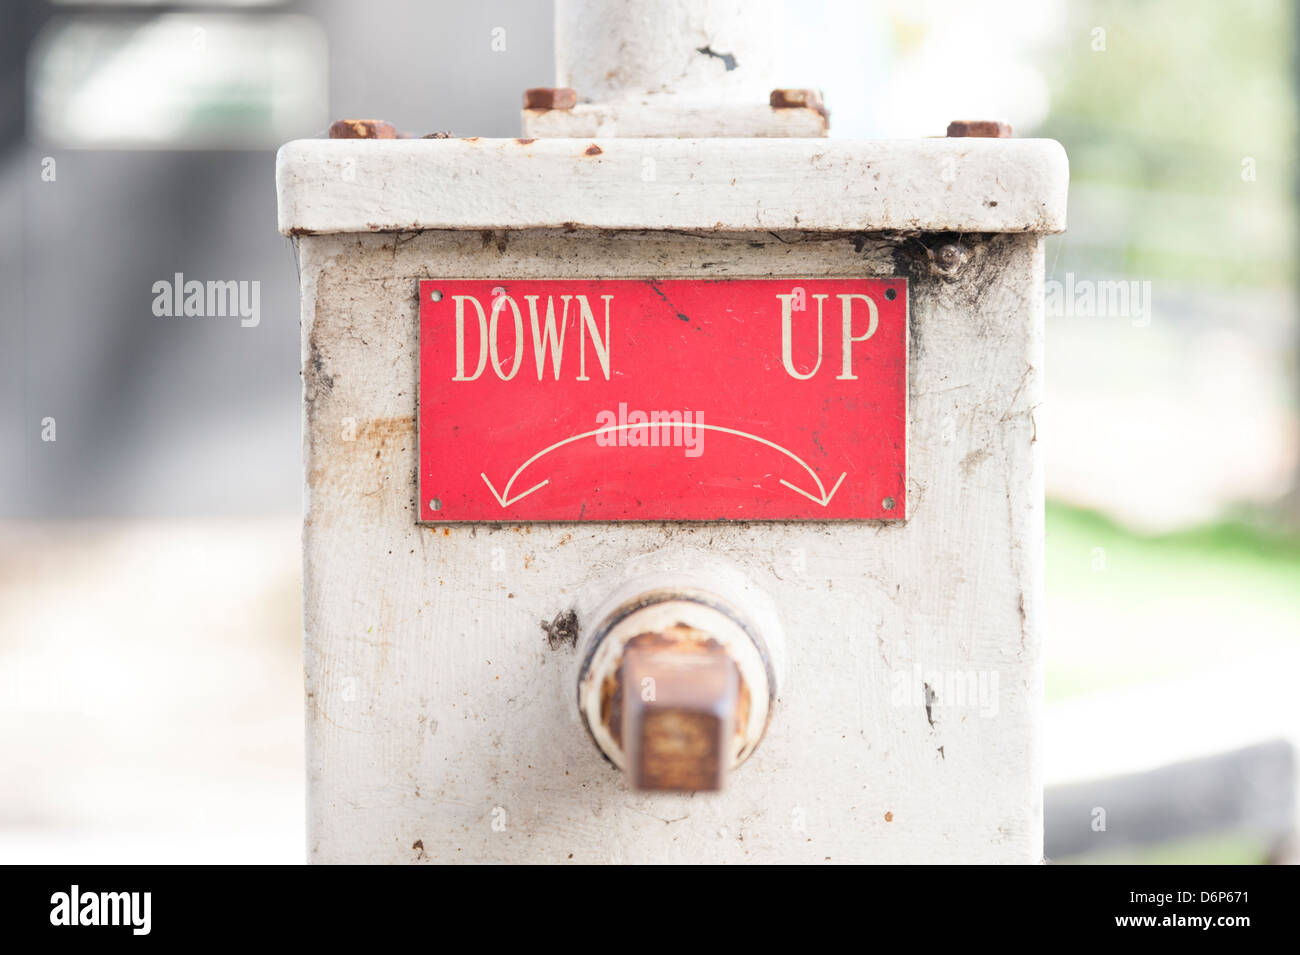 Lock Down Stock Photos Amp Lock Down Stock Images Alamy